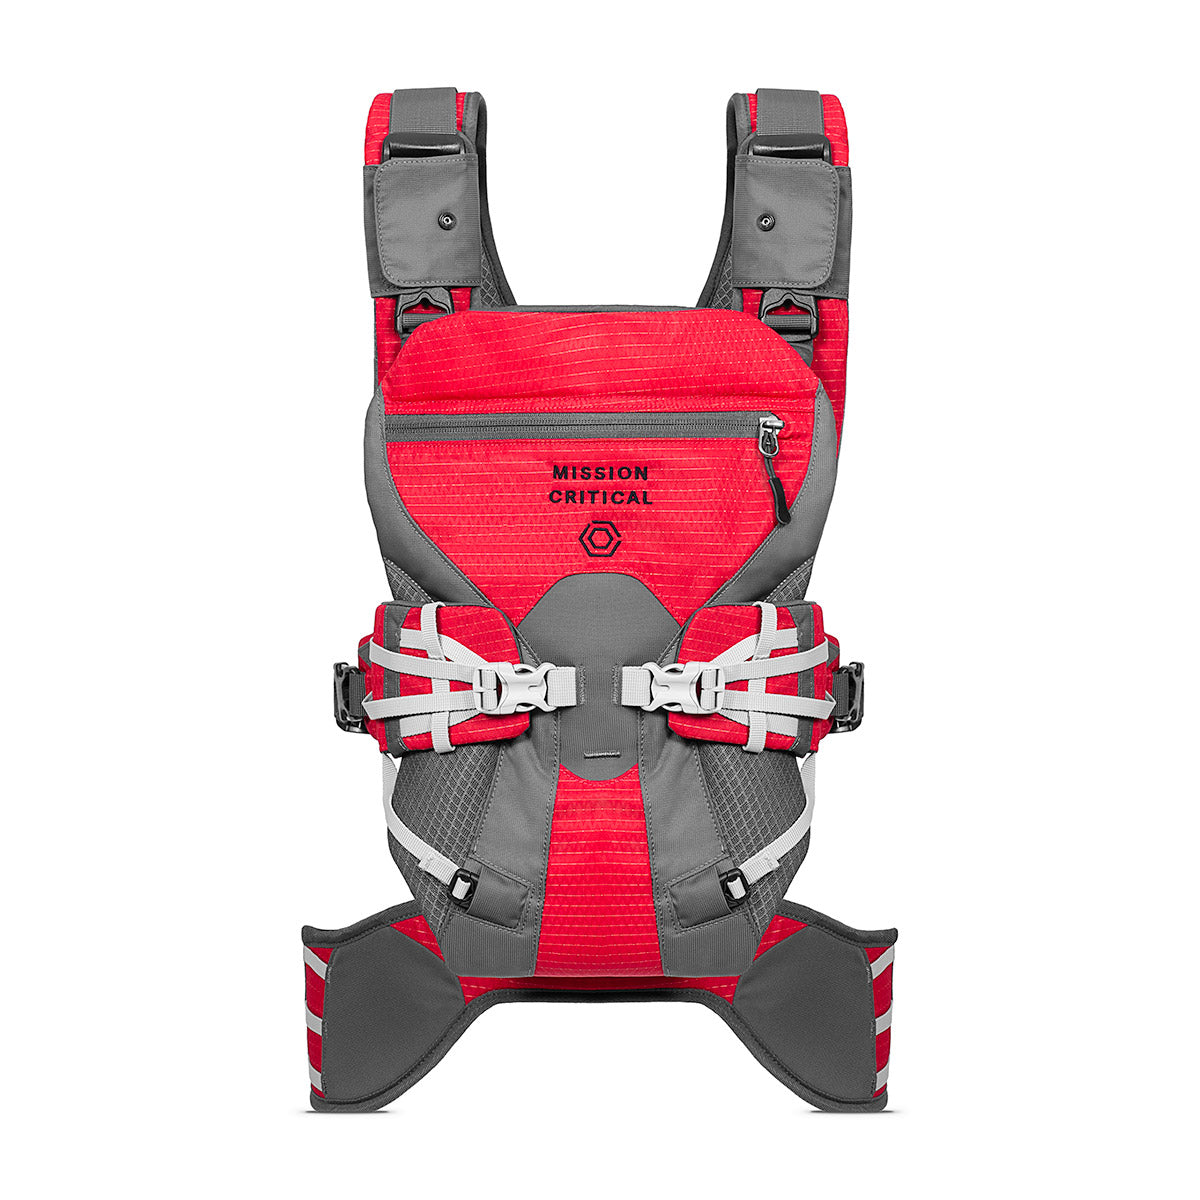 S.02 Baby Carrier Baseline Kit